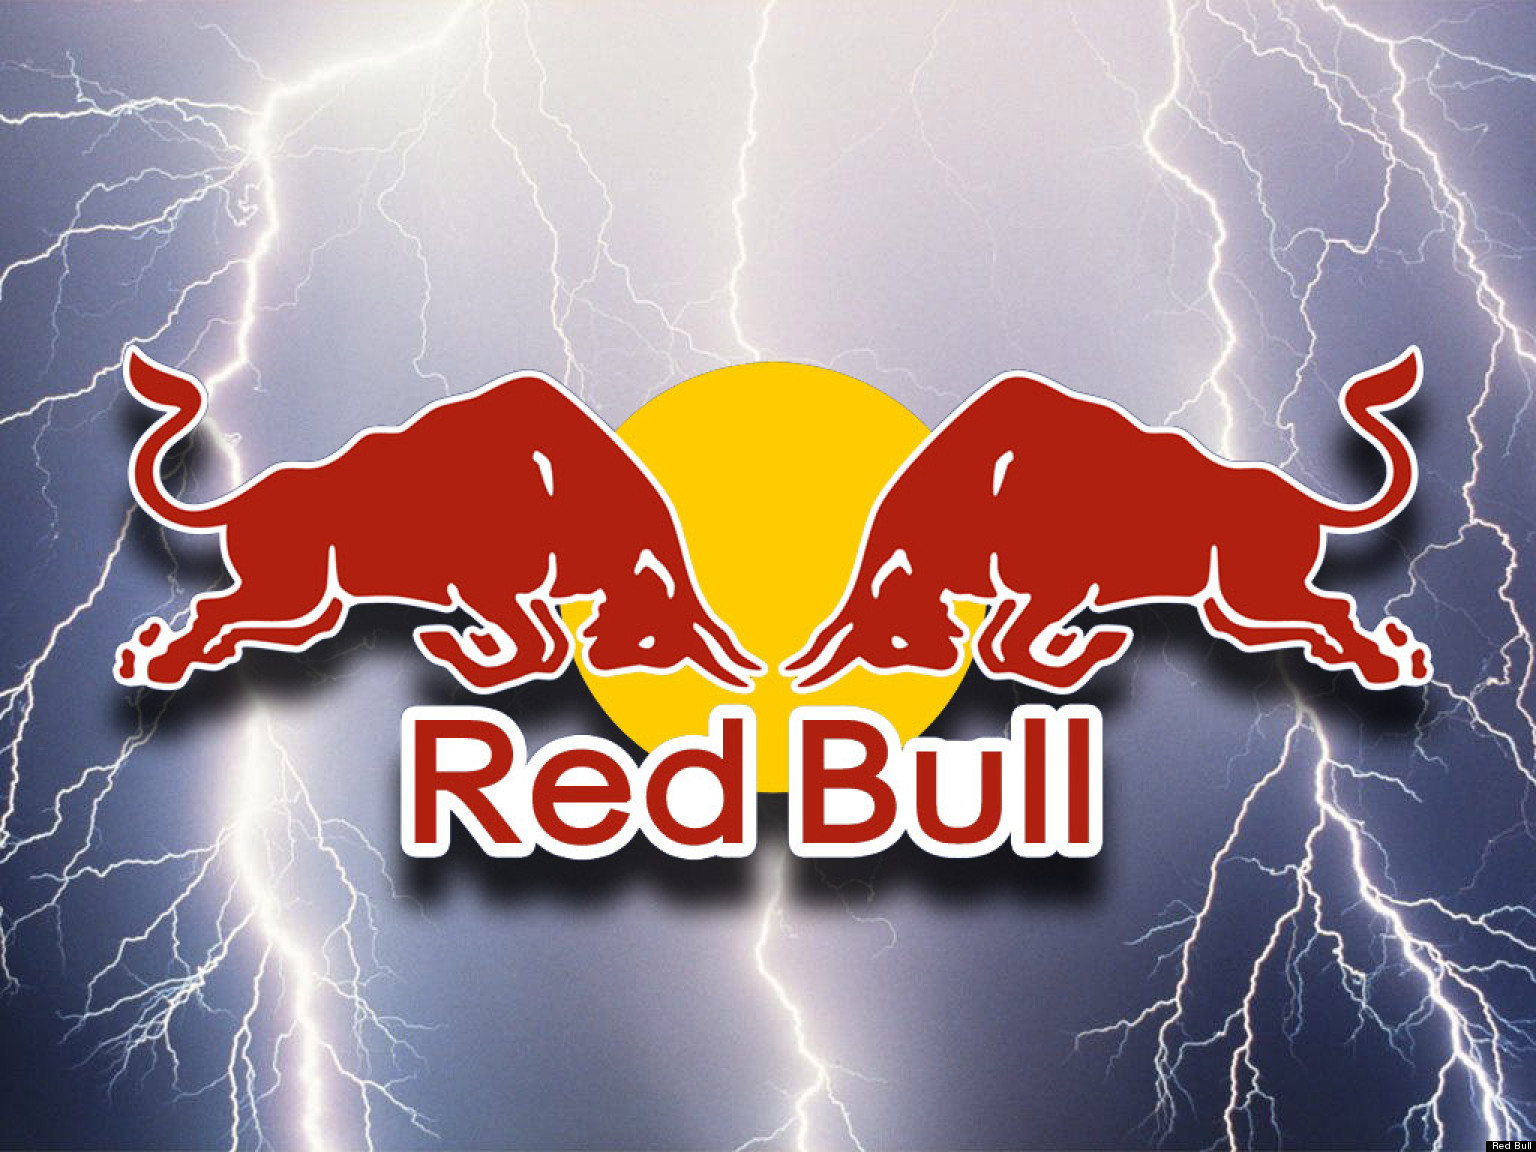 red bull lawsuit company uses deceptive marketing says plaintiff